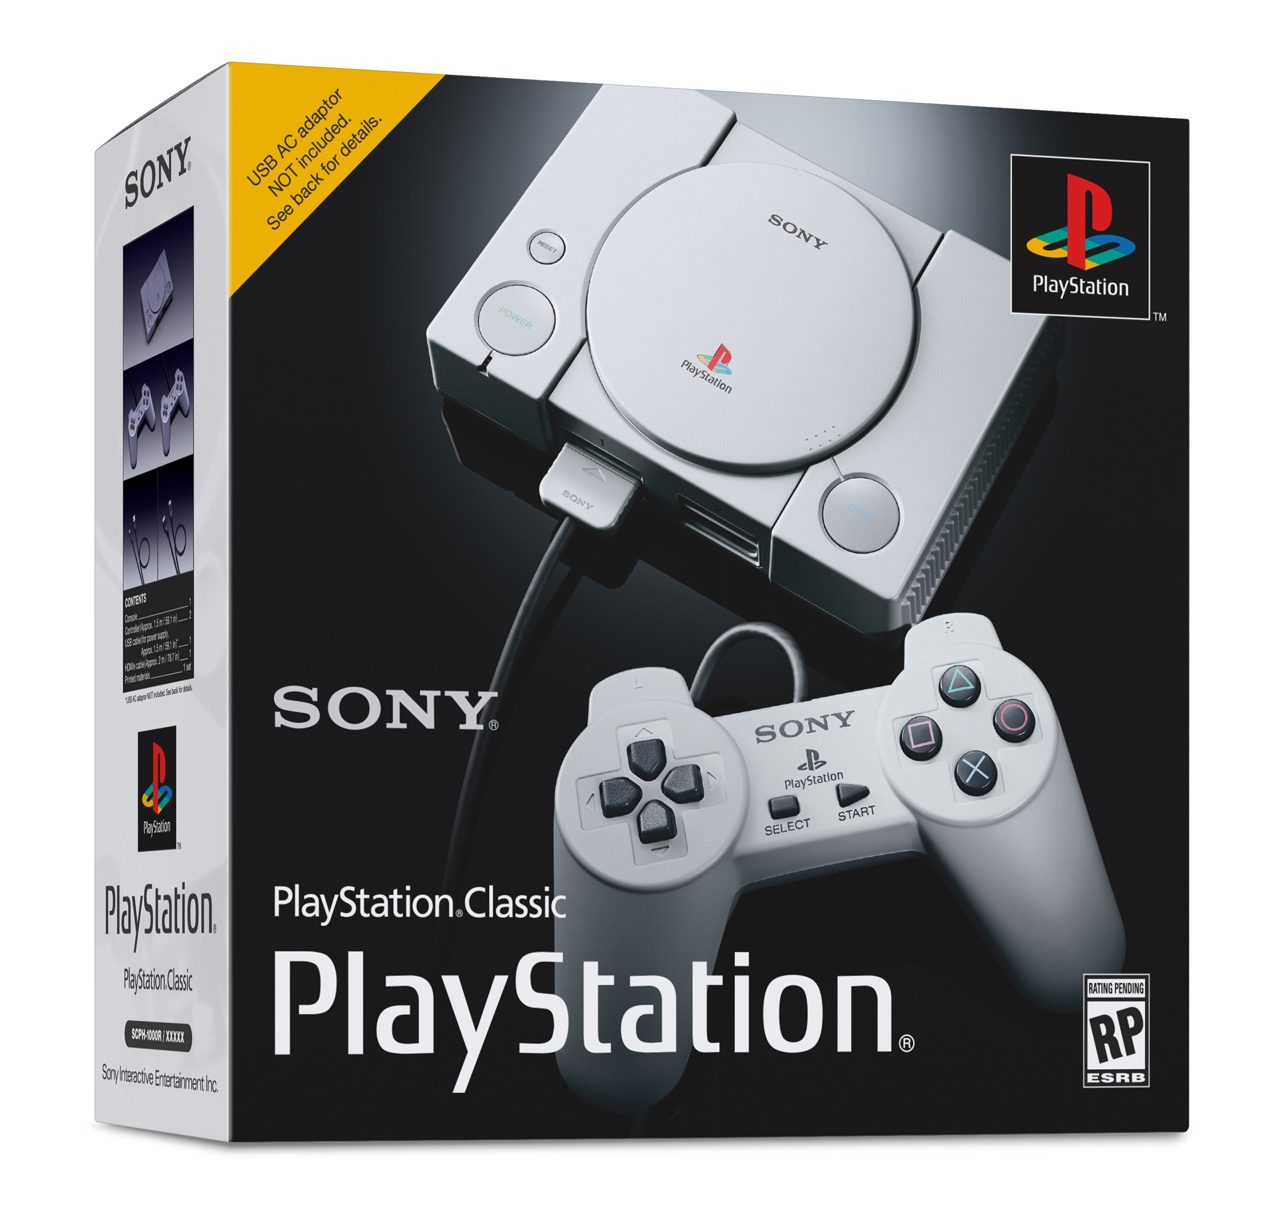 198a033614fac6 Introducing PlayStation Classic